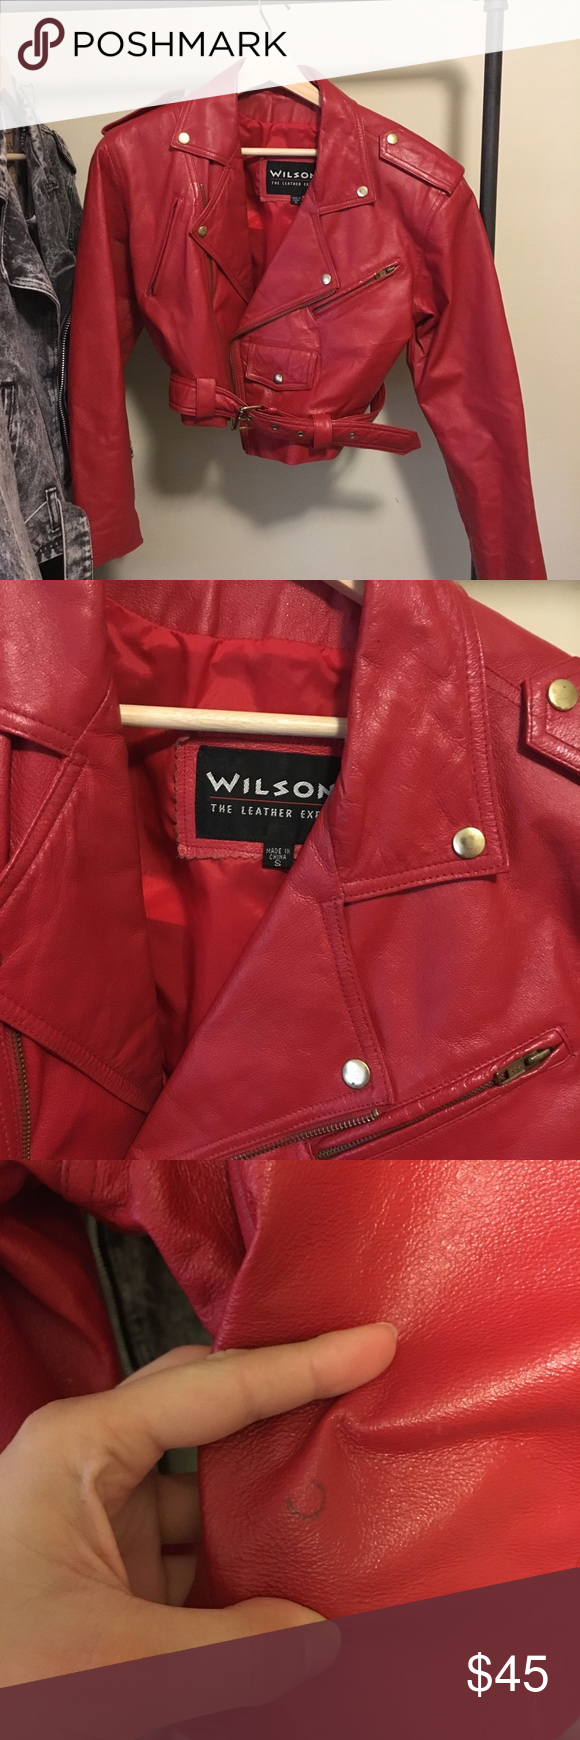 Vintage Cropped Red Leather Jacket Red Leather Jacket Leather Jacket Jackets [ 1740 x 580 Pixel ]